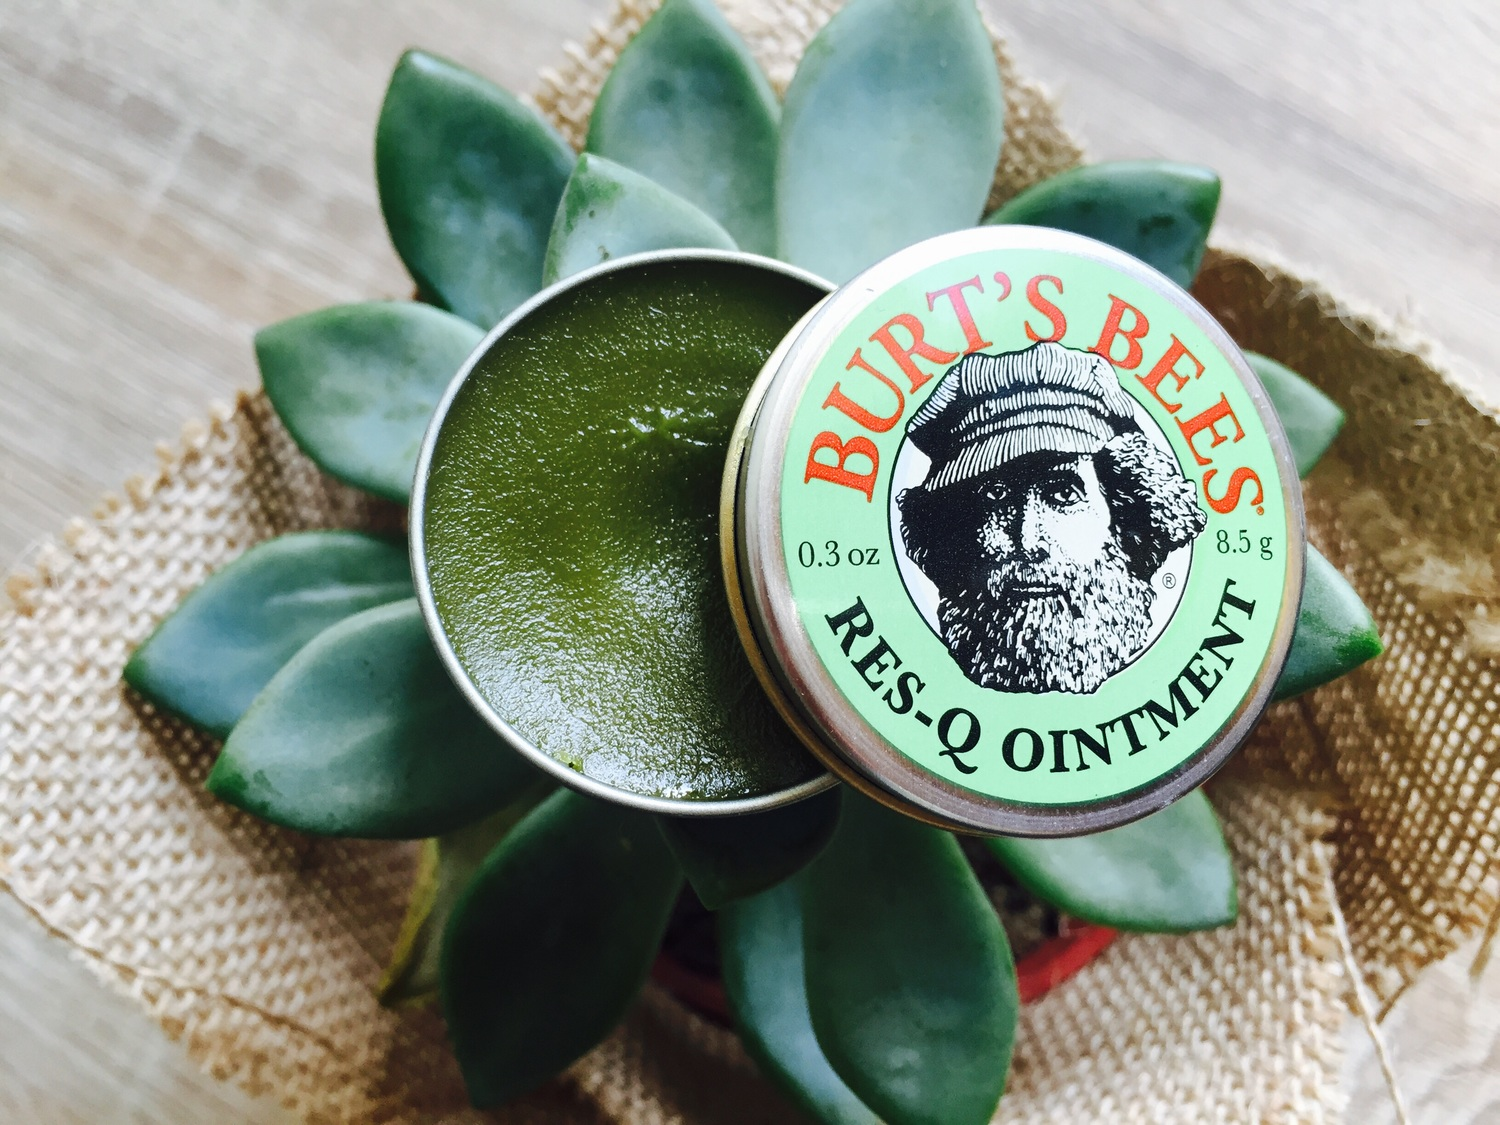 The Burt's Bees Res-Q Ointment is a fix-it-all — Project Vanity